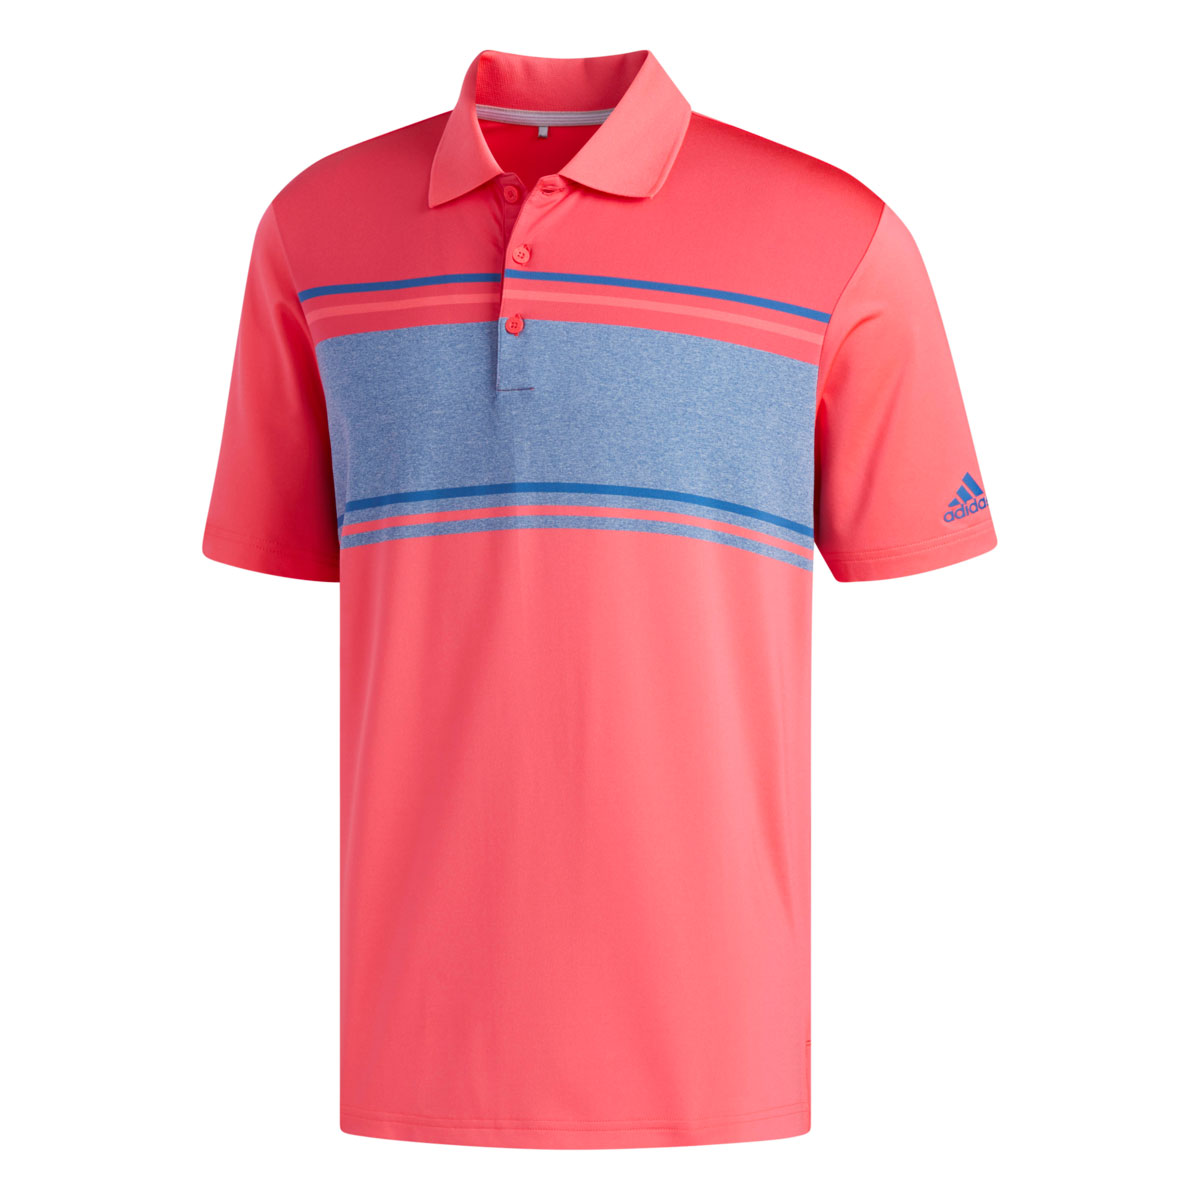 Adidas Ultimate 2.0 Classic Merch Stripe Red/Pink/Marine Polo